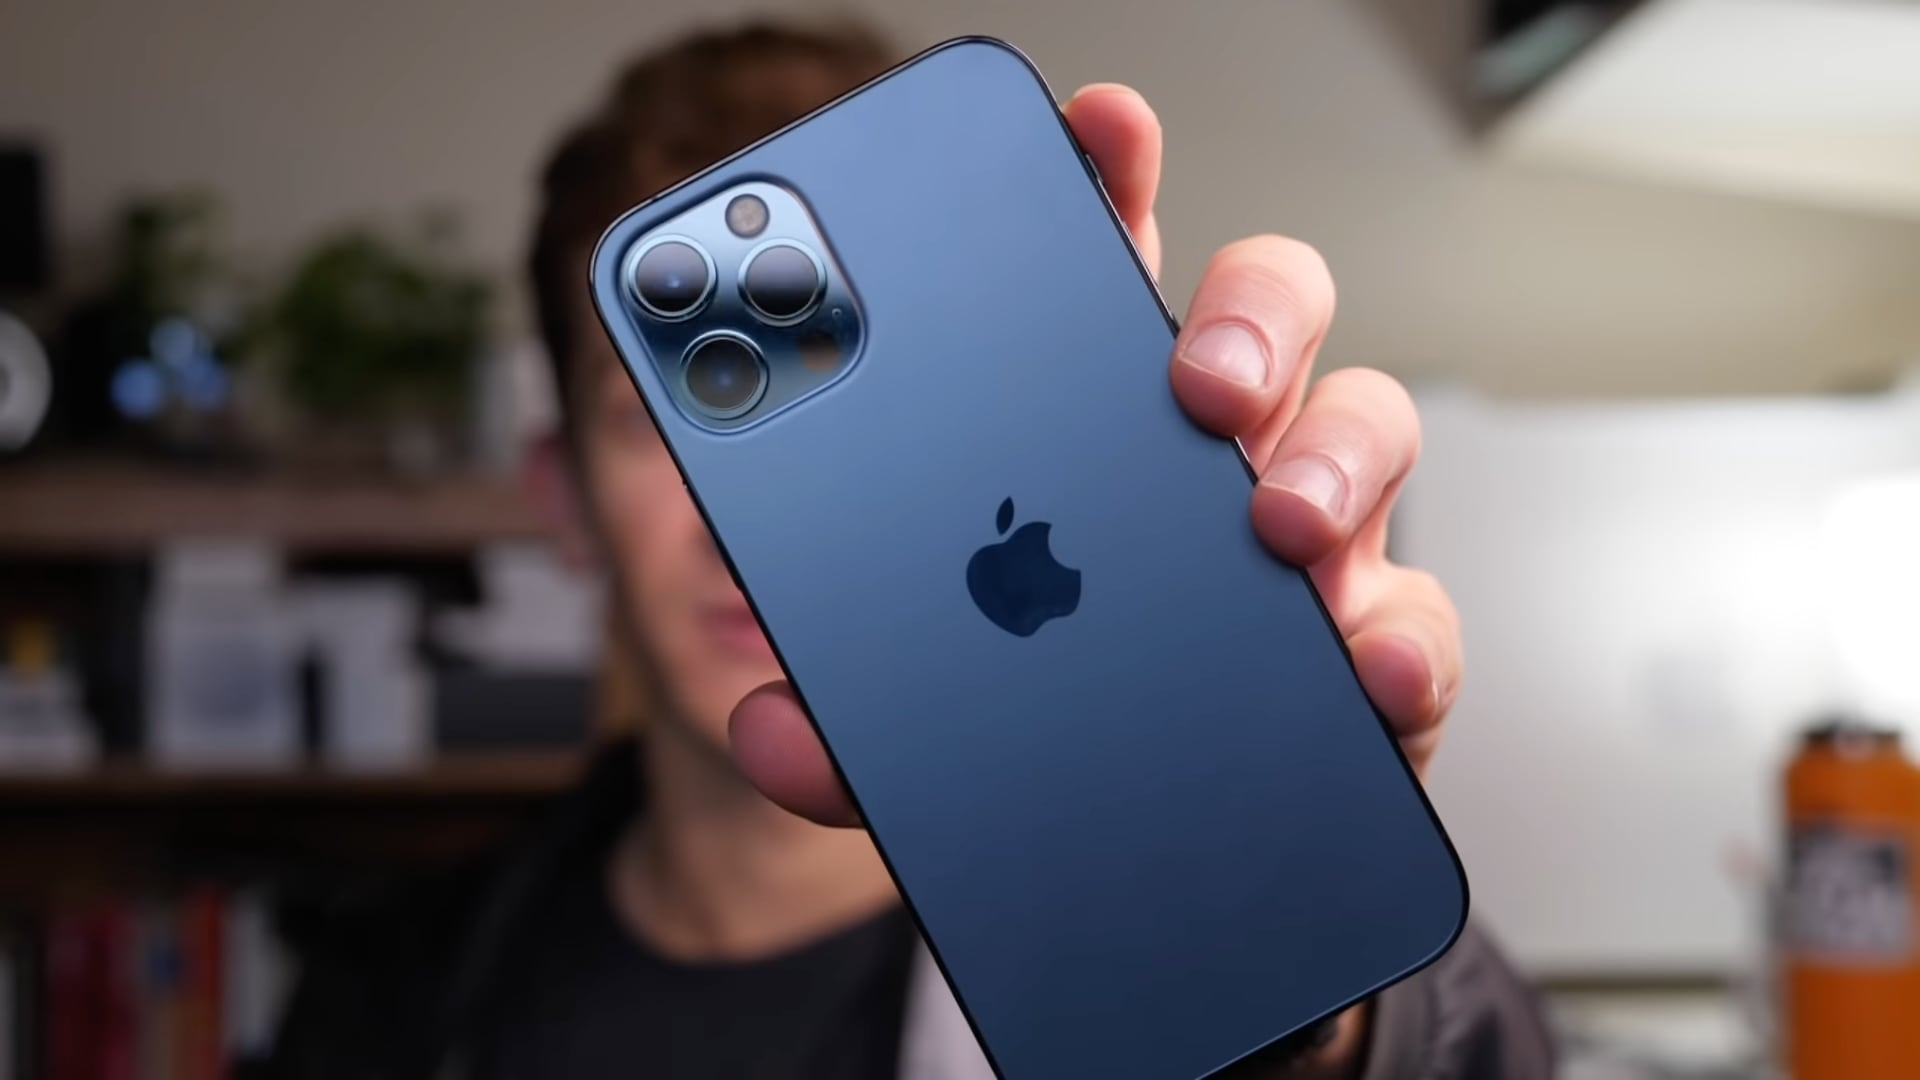 A still image taken from iDownloadBlog's video about 10 hidden iPhone 13 features, with host Harris Craycraft showing a blue iPhone 13 Pro Max in his hand to the camera